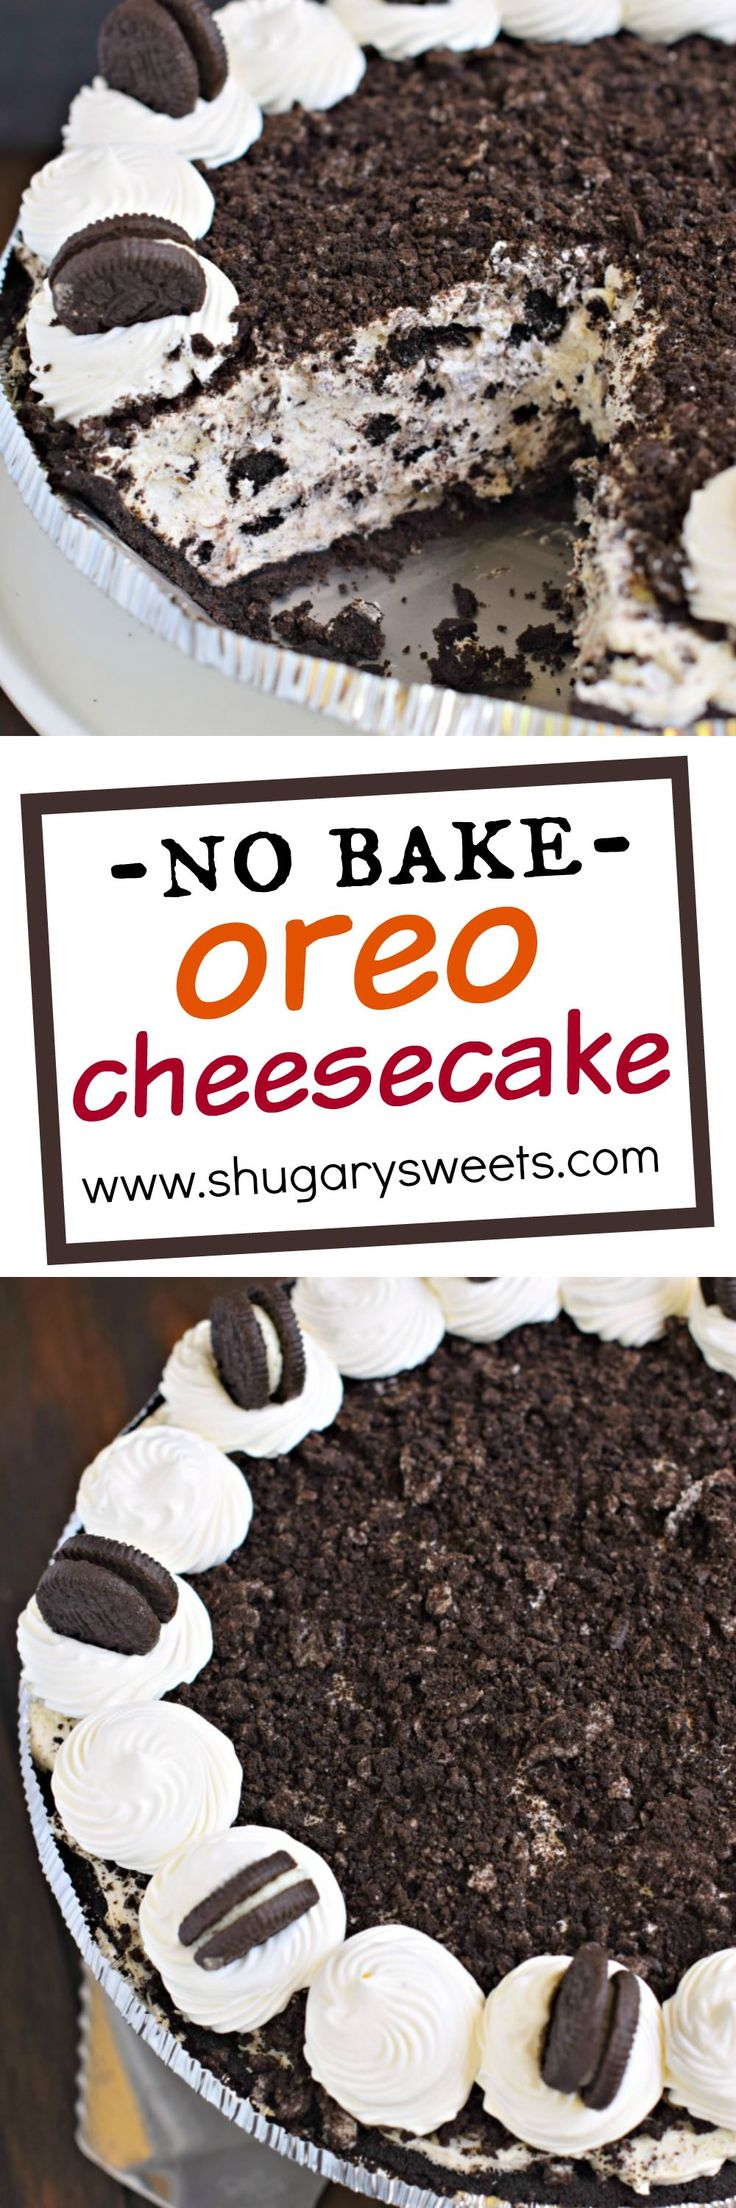 When you're looking for an easy dessert, this No Bake Oreo Cheesecake recipe is a creamy, flavorful pie! Easy to throw together for a delicious treat!: